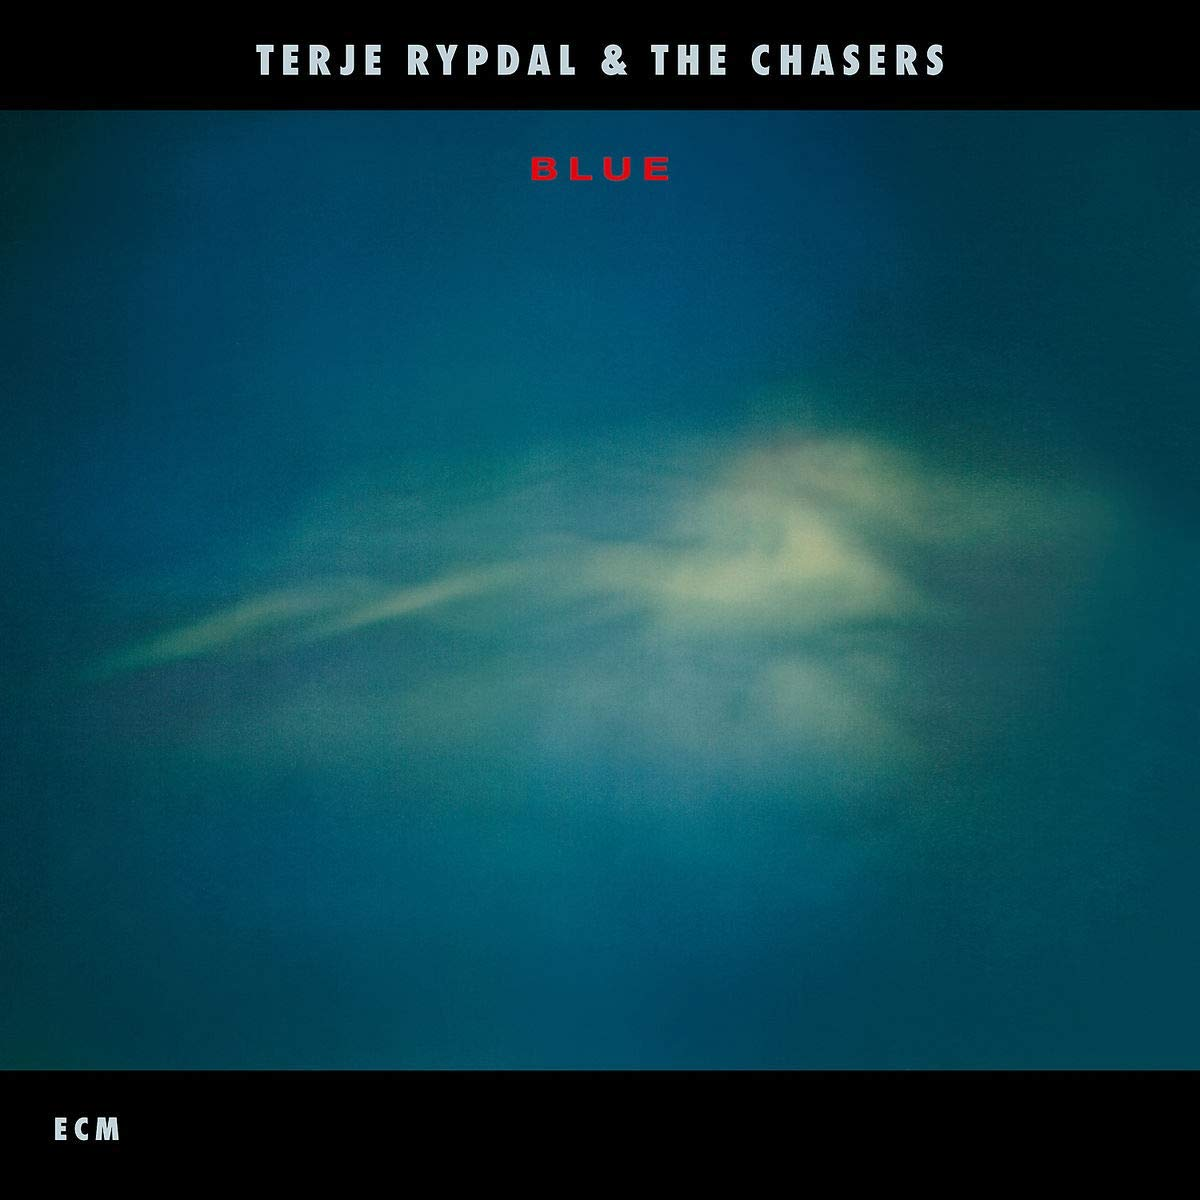 CD : TERJE RYPDAL & THE CHASERS - Blue (CD)